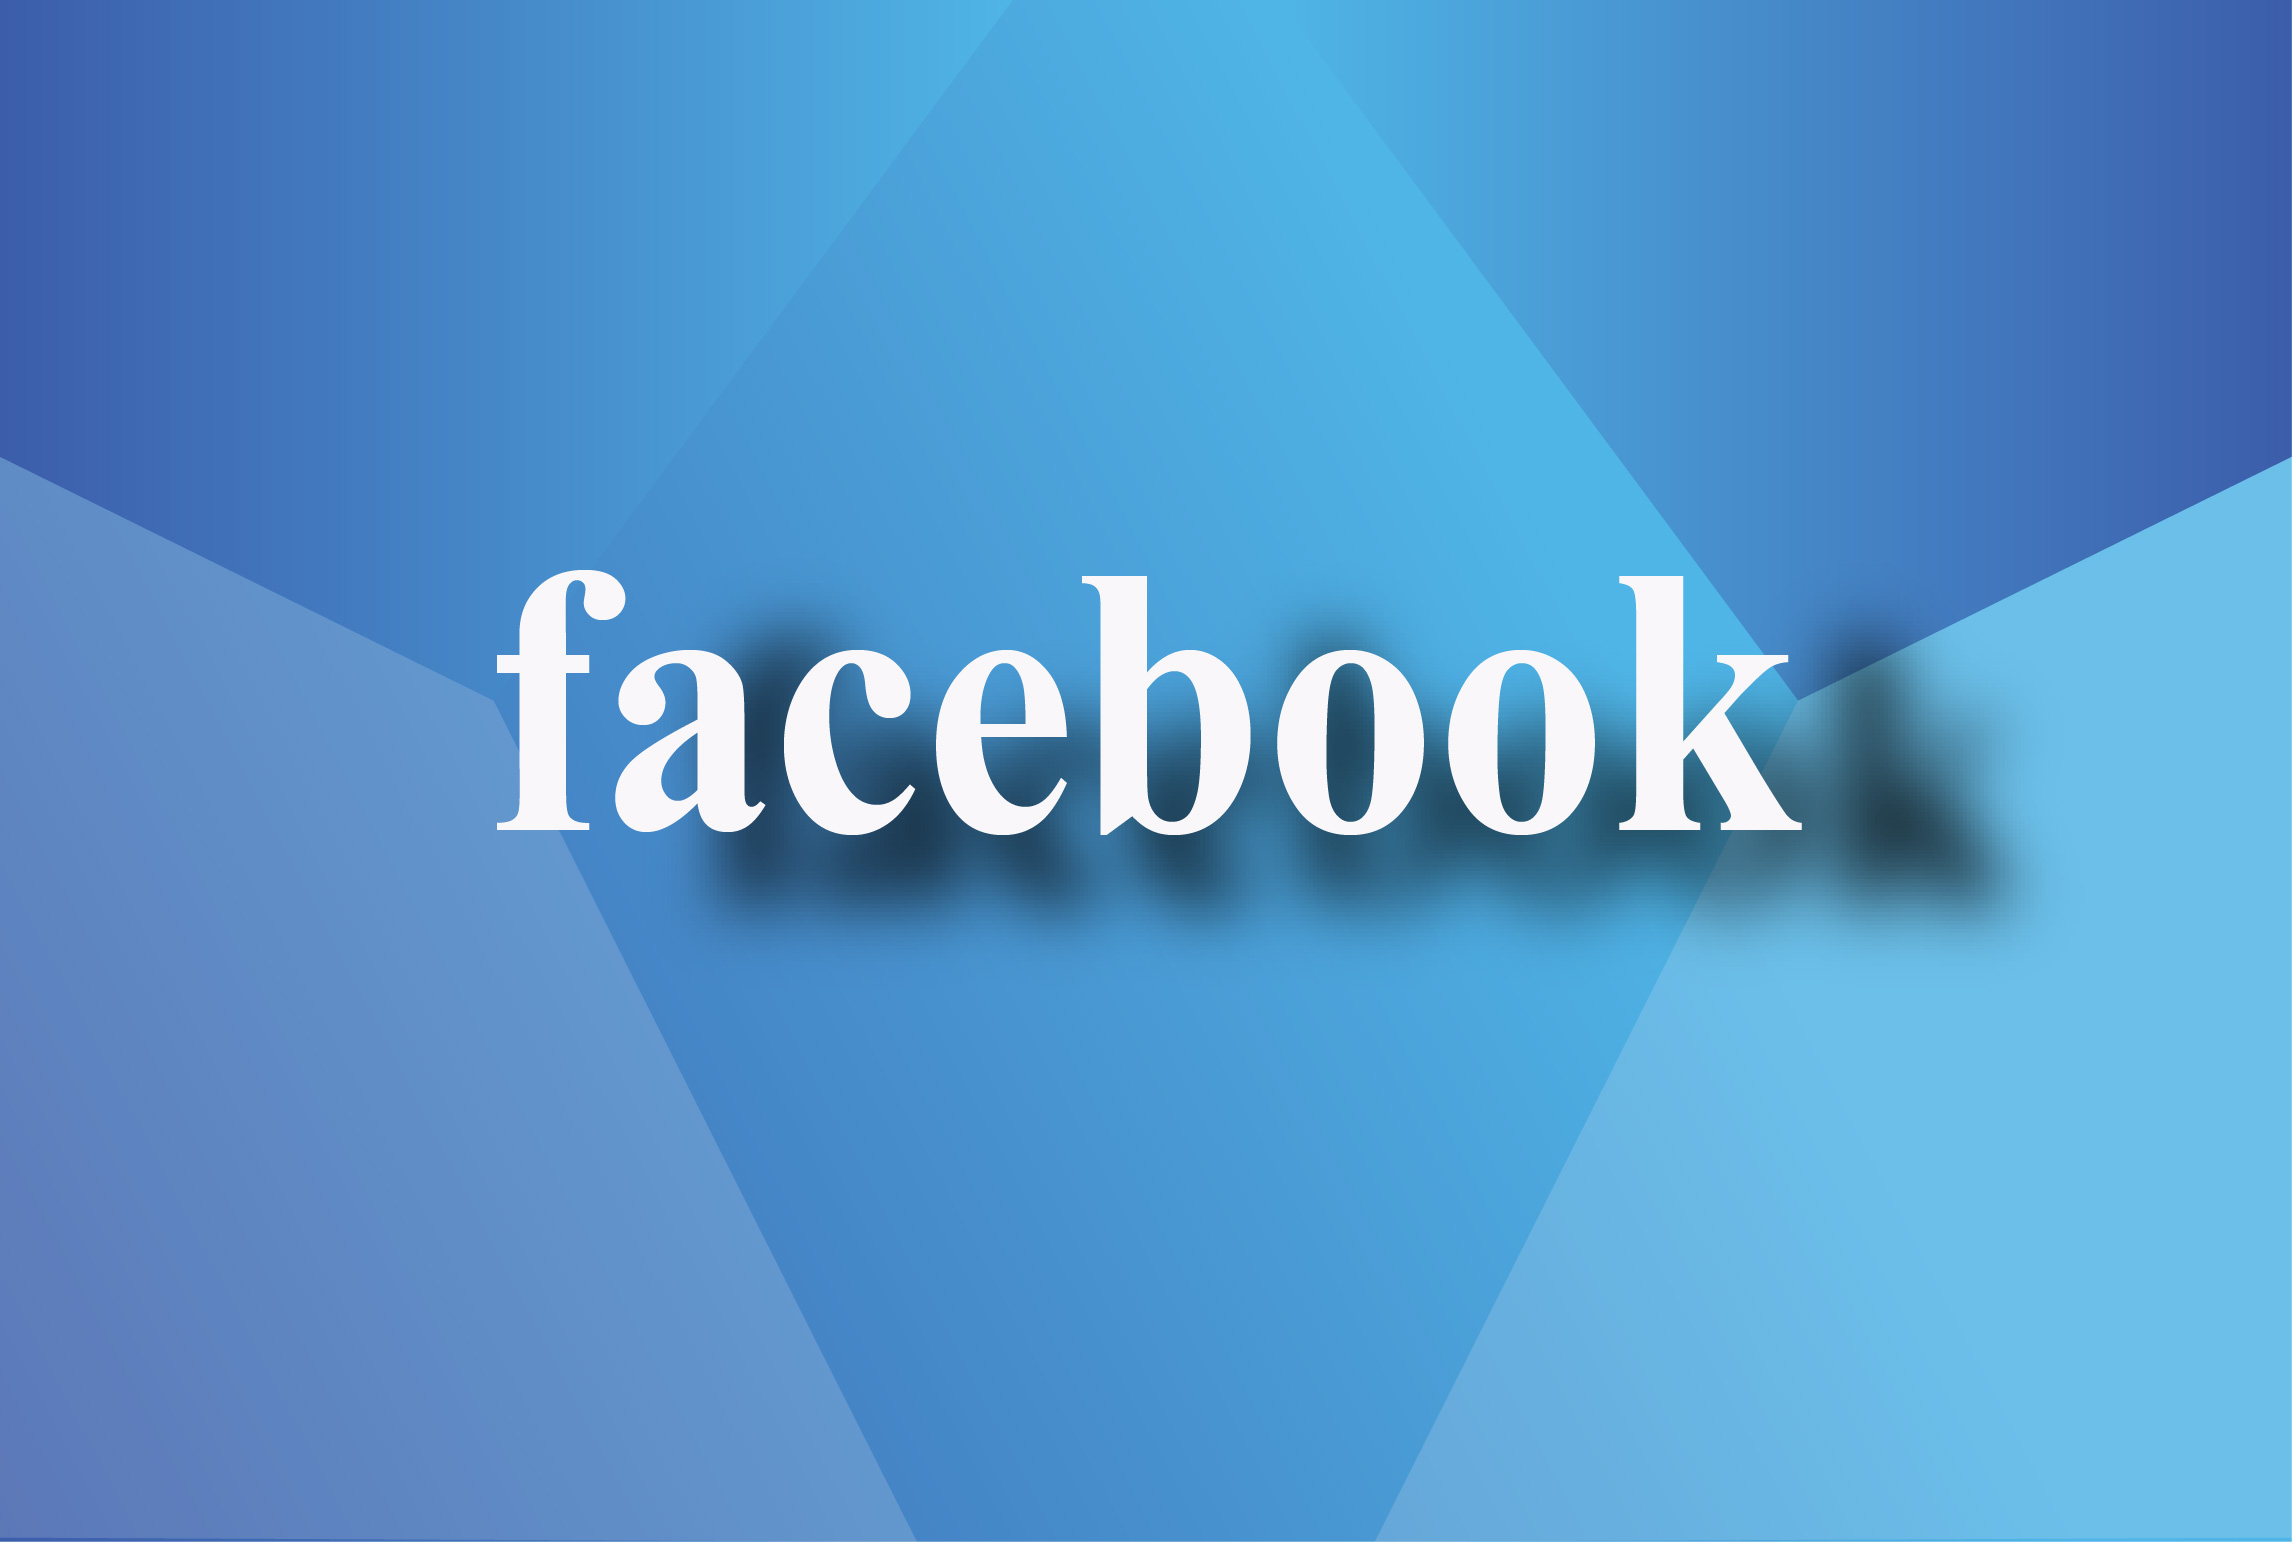 I will do socialmedia promotion for your business to targeted users